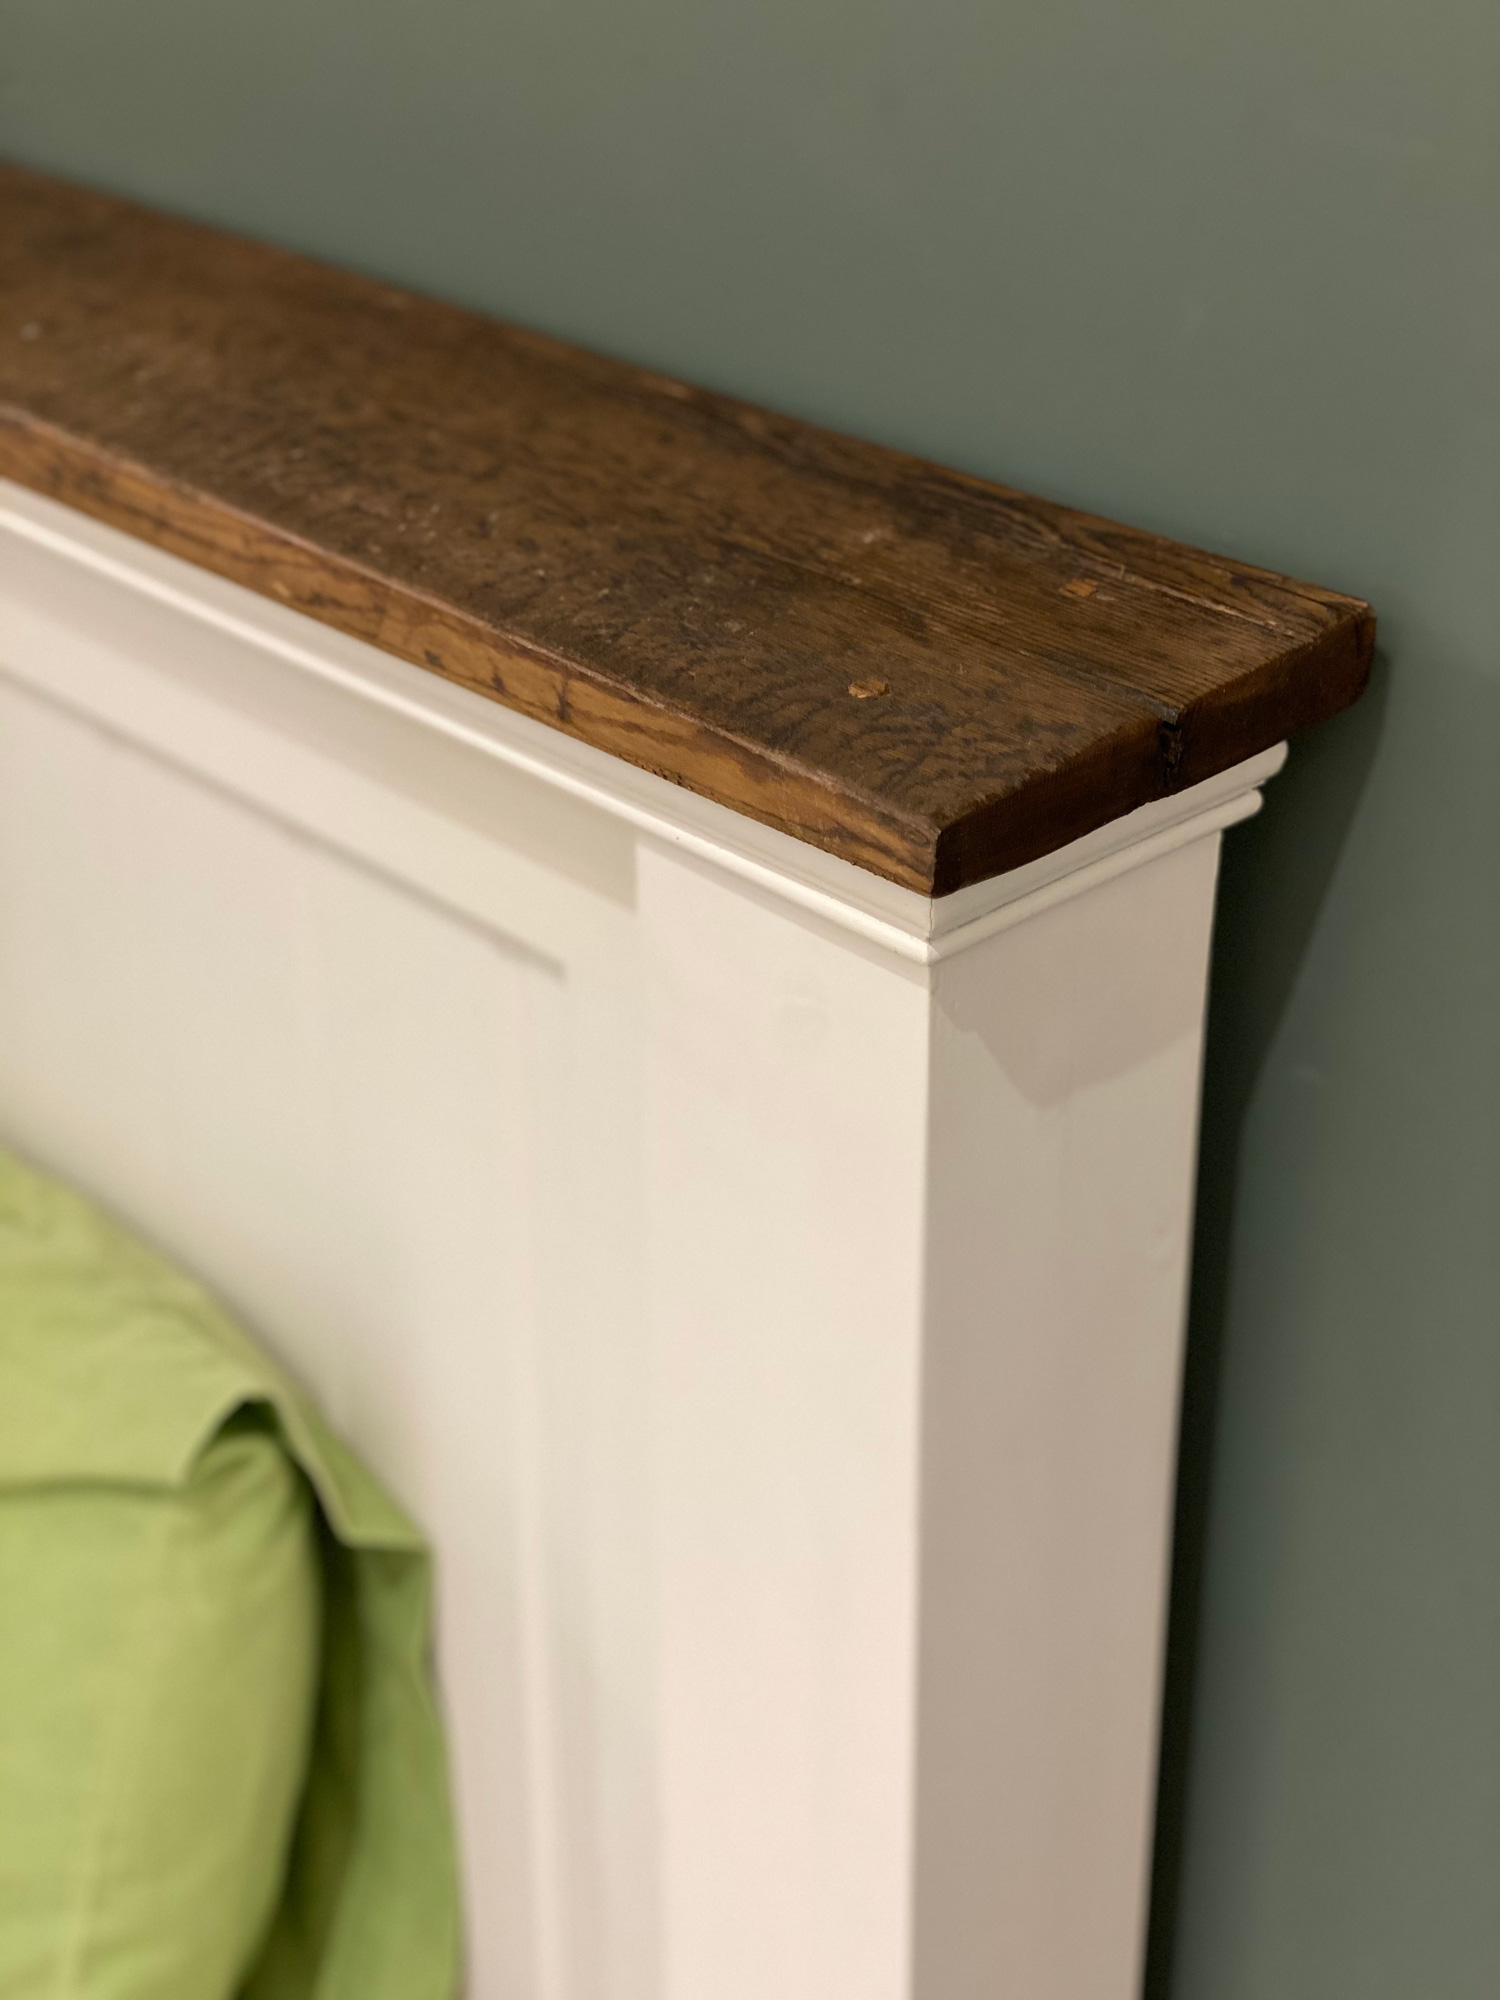 Painted bed headboard with rustic wood capping